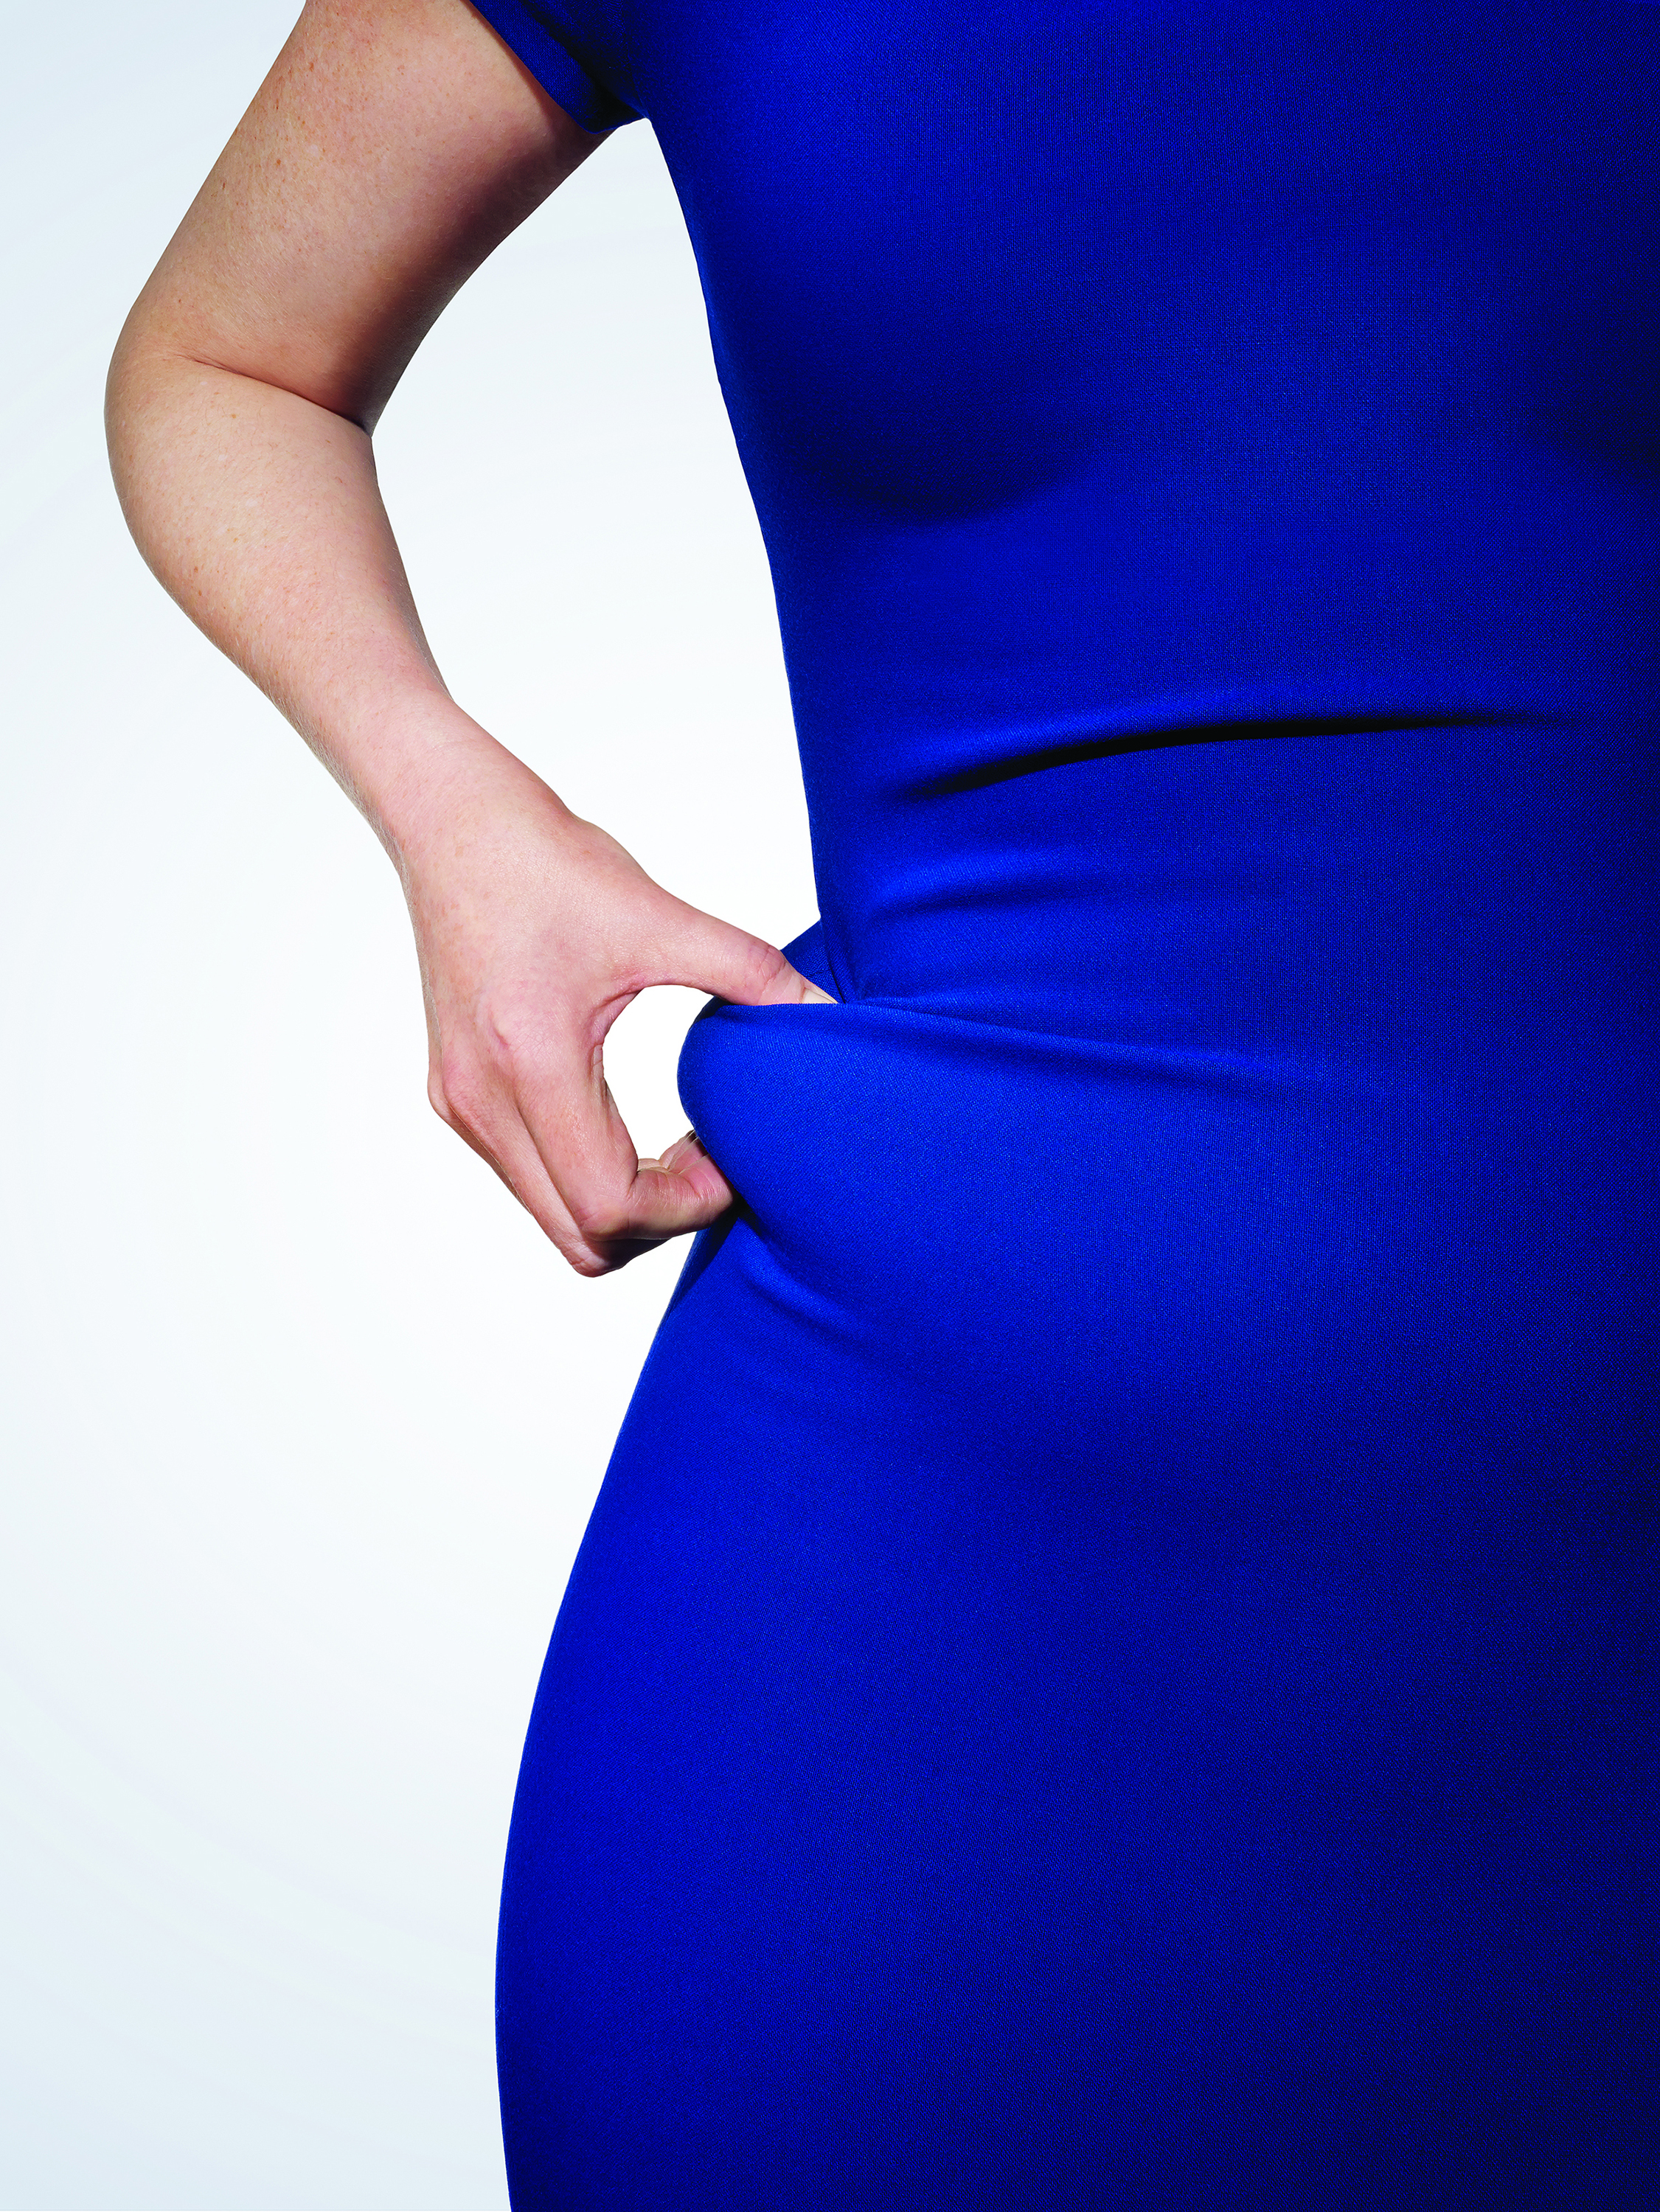 Lose fat with CoolSculpting